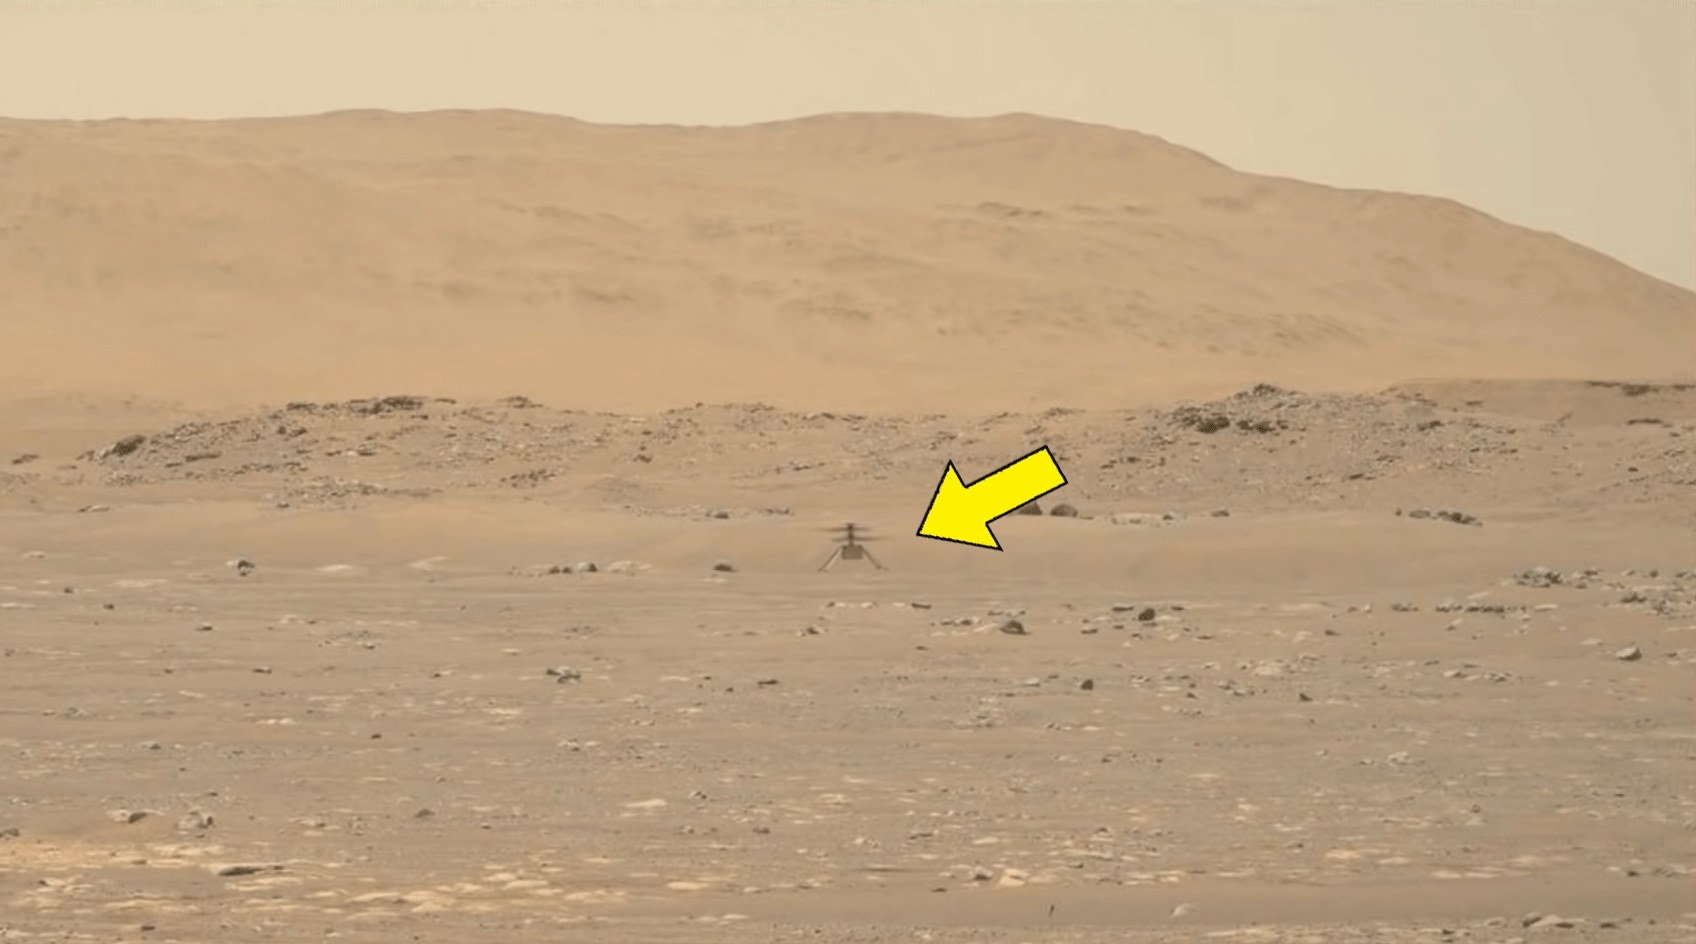 Ingenuity hovering above the surface on Mars